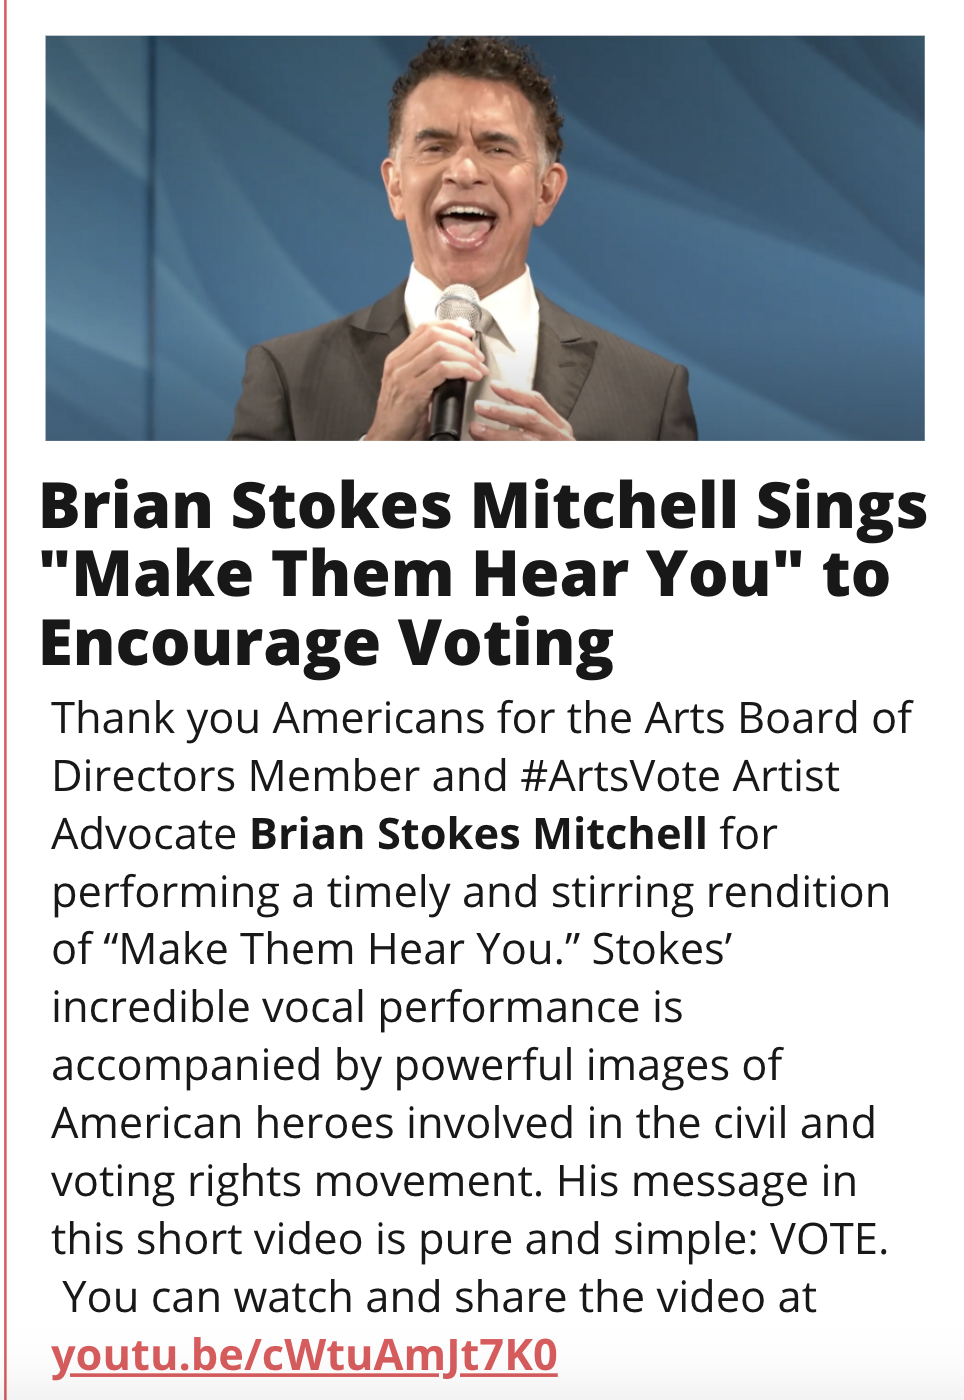 "IMAGE: Brian Stokes Mitchell Singing TITLE: Brian Stokes Mitchell Sings ""Make Them Hear You"" to Encourage Voting  STORY: Thank you Americans for the Arts Board of Directors Member and #ArtsVote Artist Advocate Brian Stokes Mitchell for performing a timely and stirring rendition of"